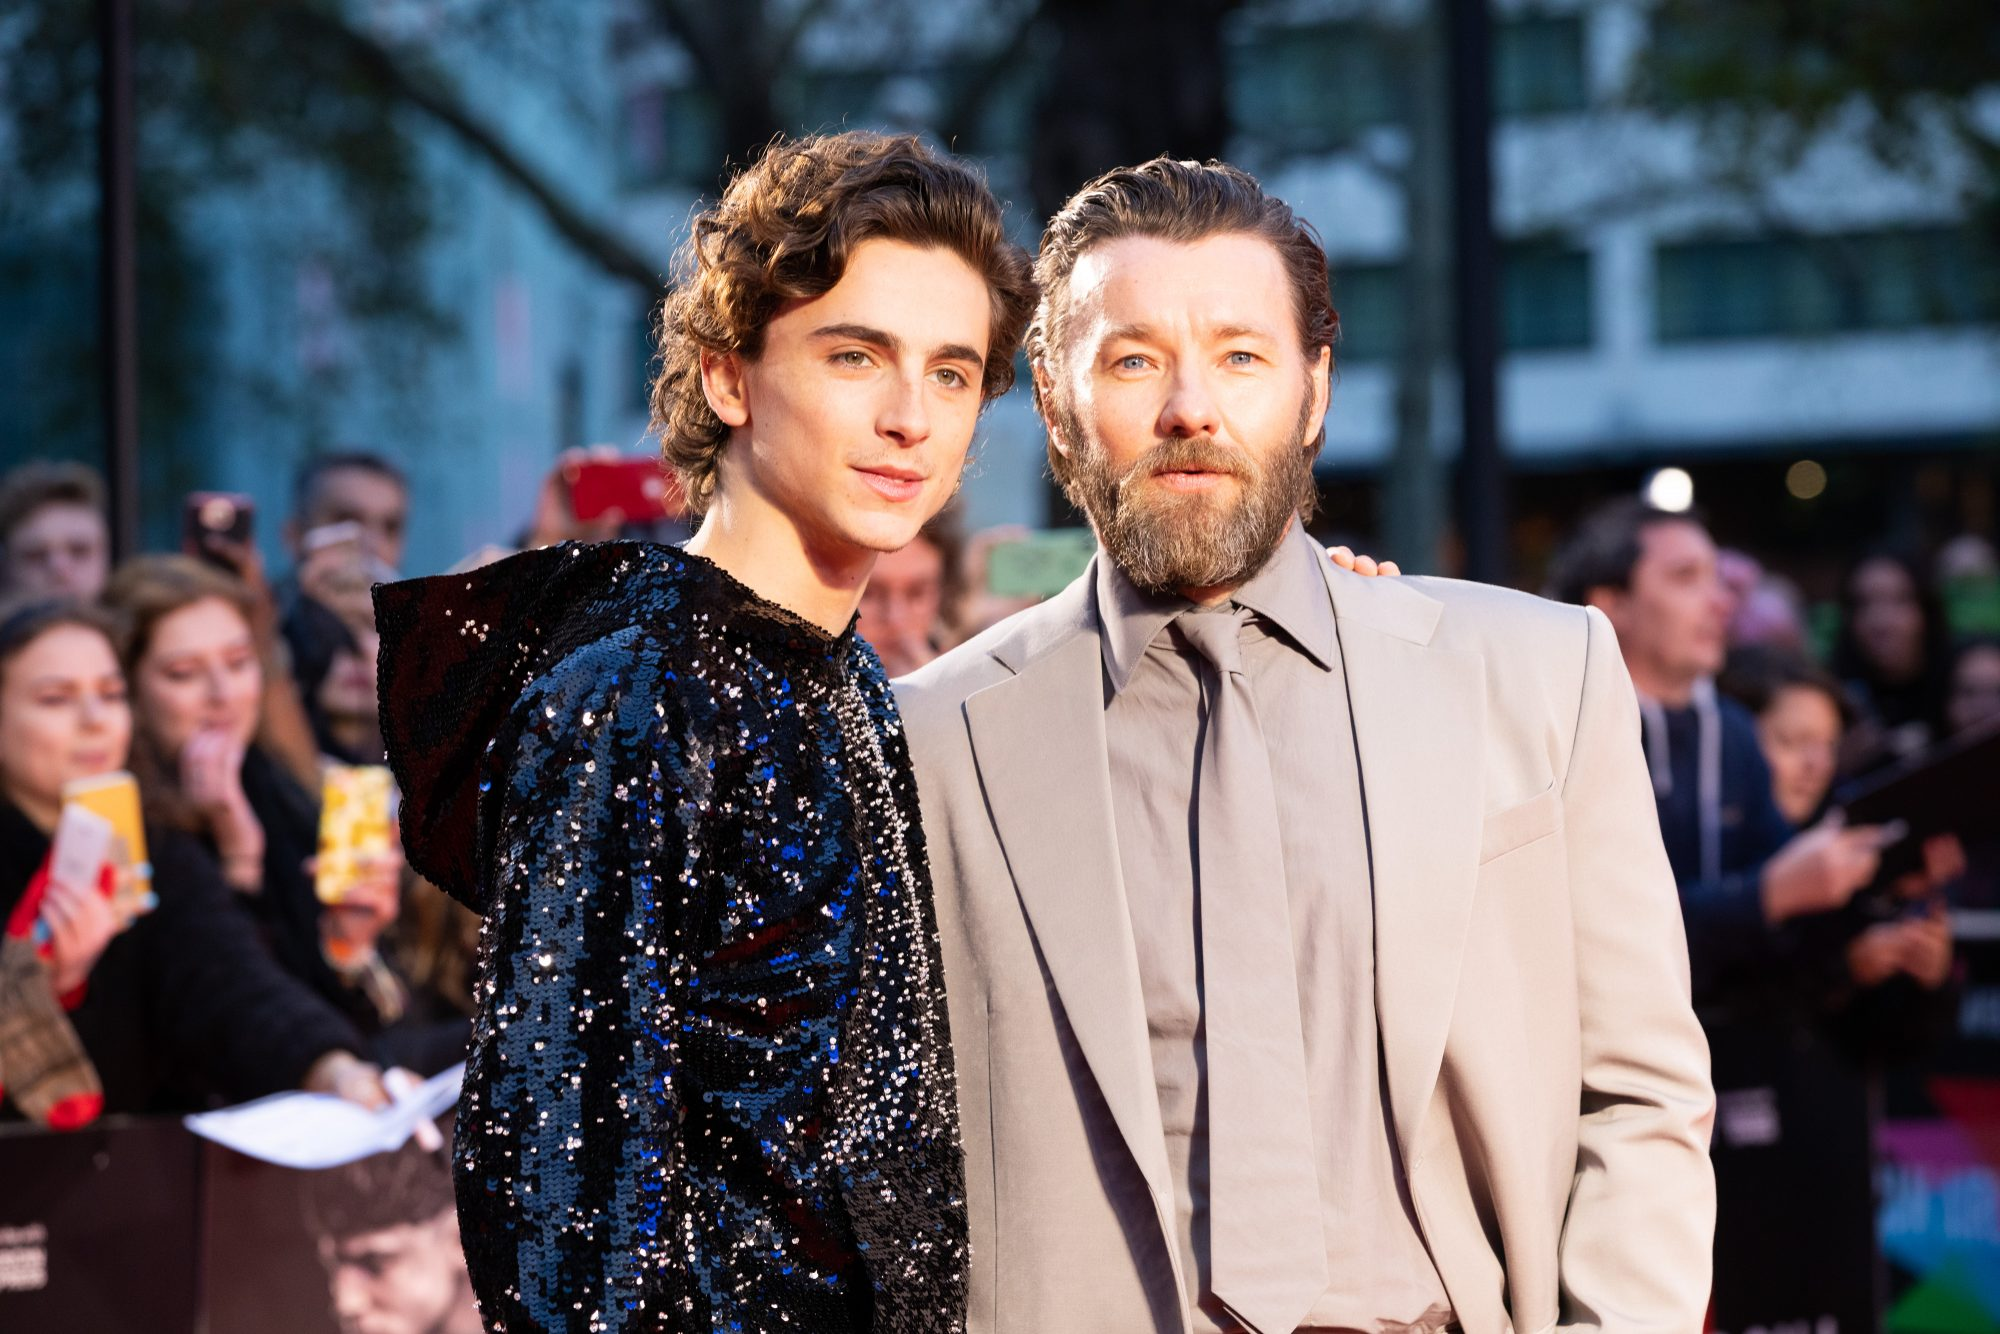 Timothee Chalamet and Joel Edgerton at The King UK Premiere during the 63rd BFI London Film Festival at Odeon Luxe Leicester Square on 3rd October 2019.  Photos: Netflix